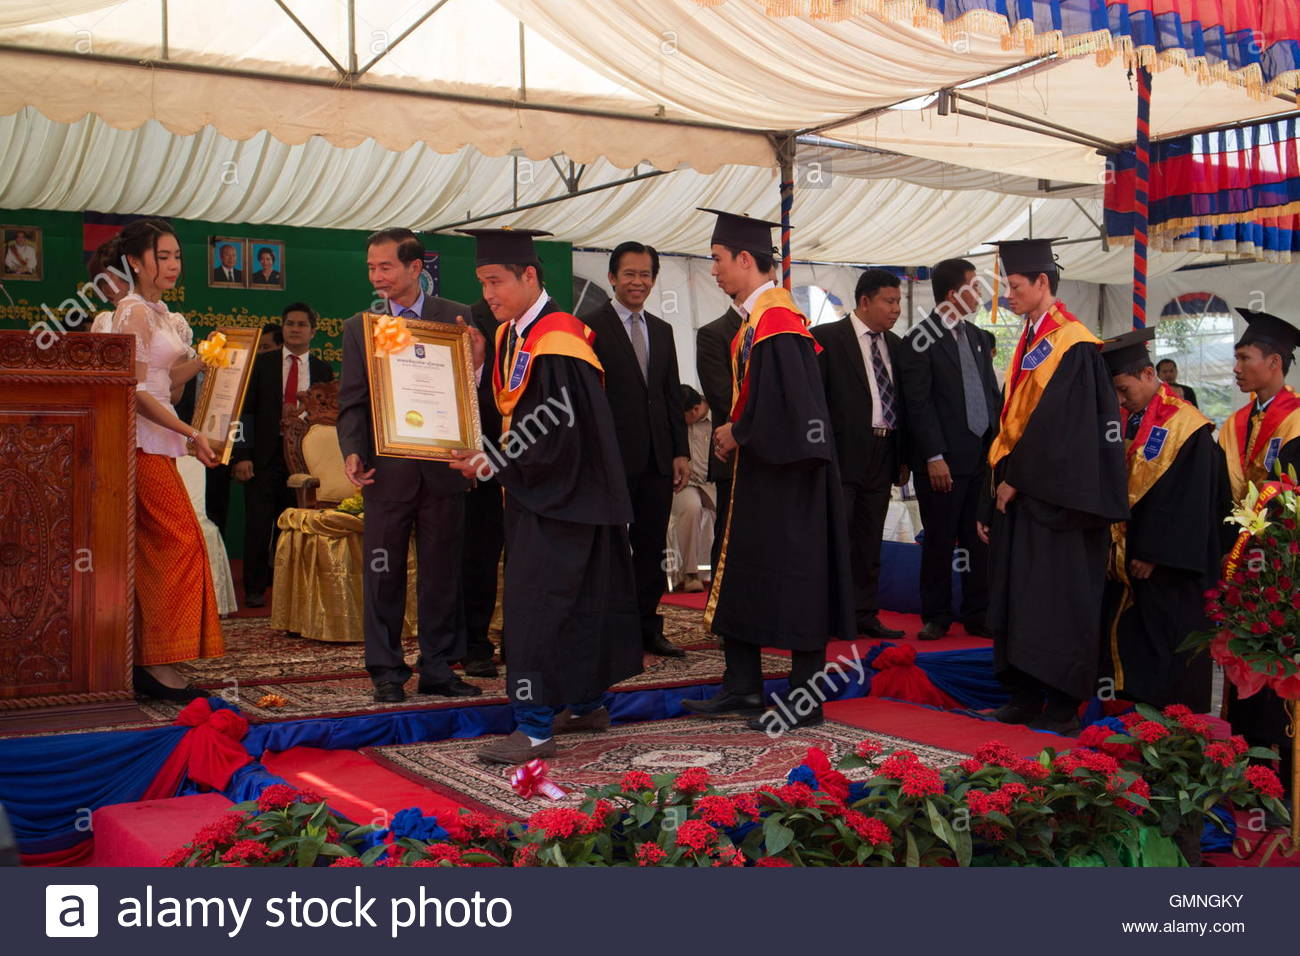 University students in Asia line up to receive their diplomas at a graduation ceremony. - Stock Image